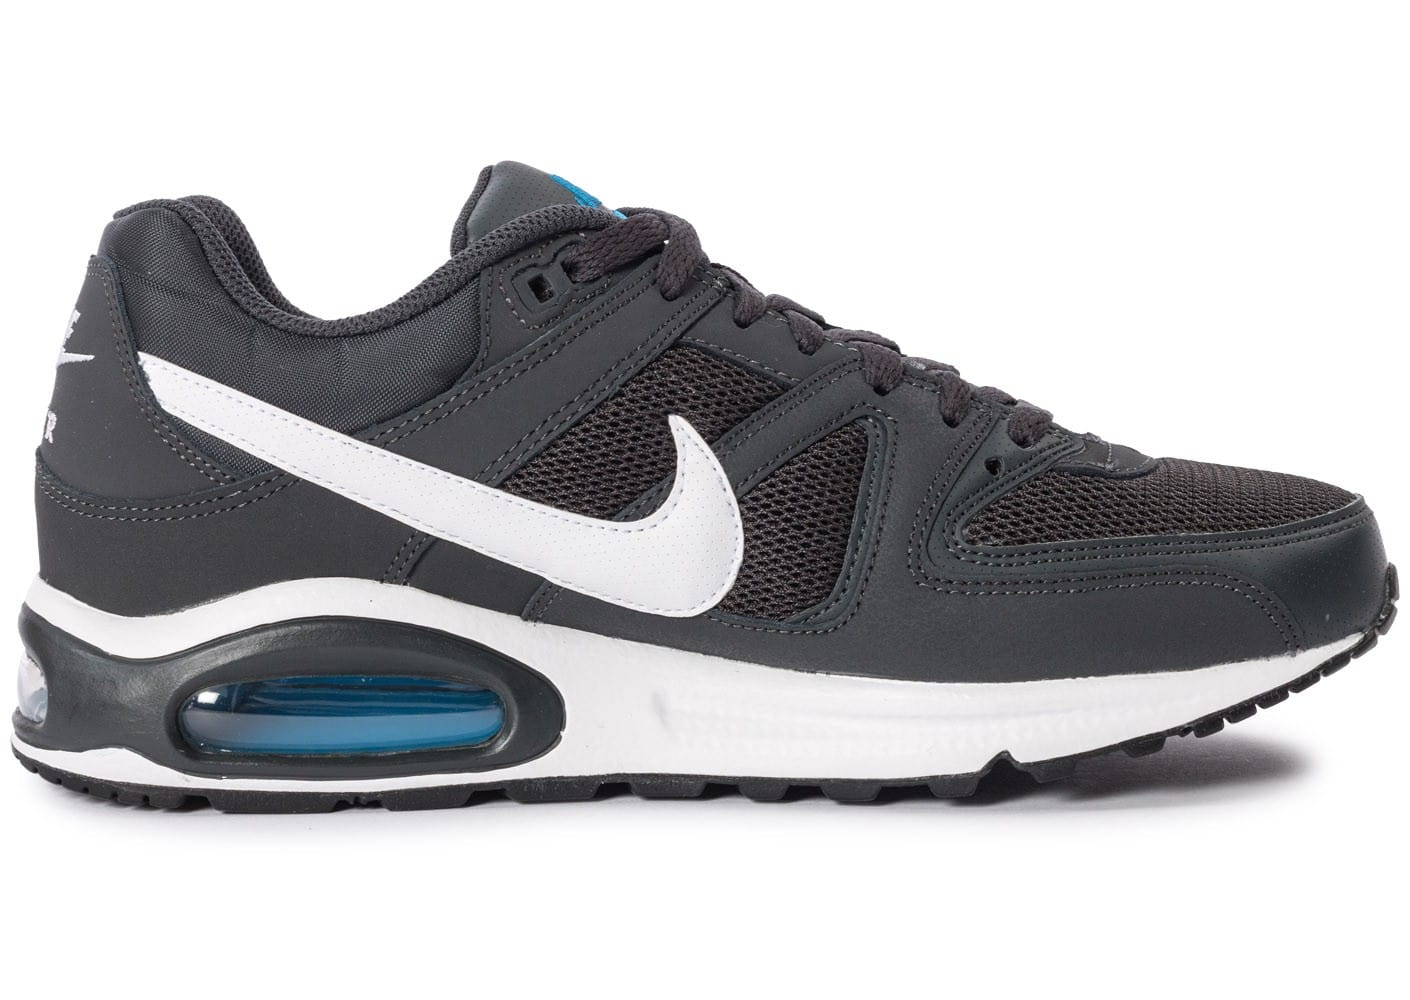 nike air max command anthracite chaussures homme chausport. Black Bedroom Furniture Sets. Home Design Ideas